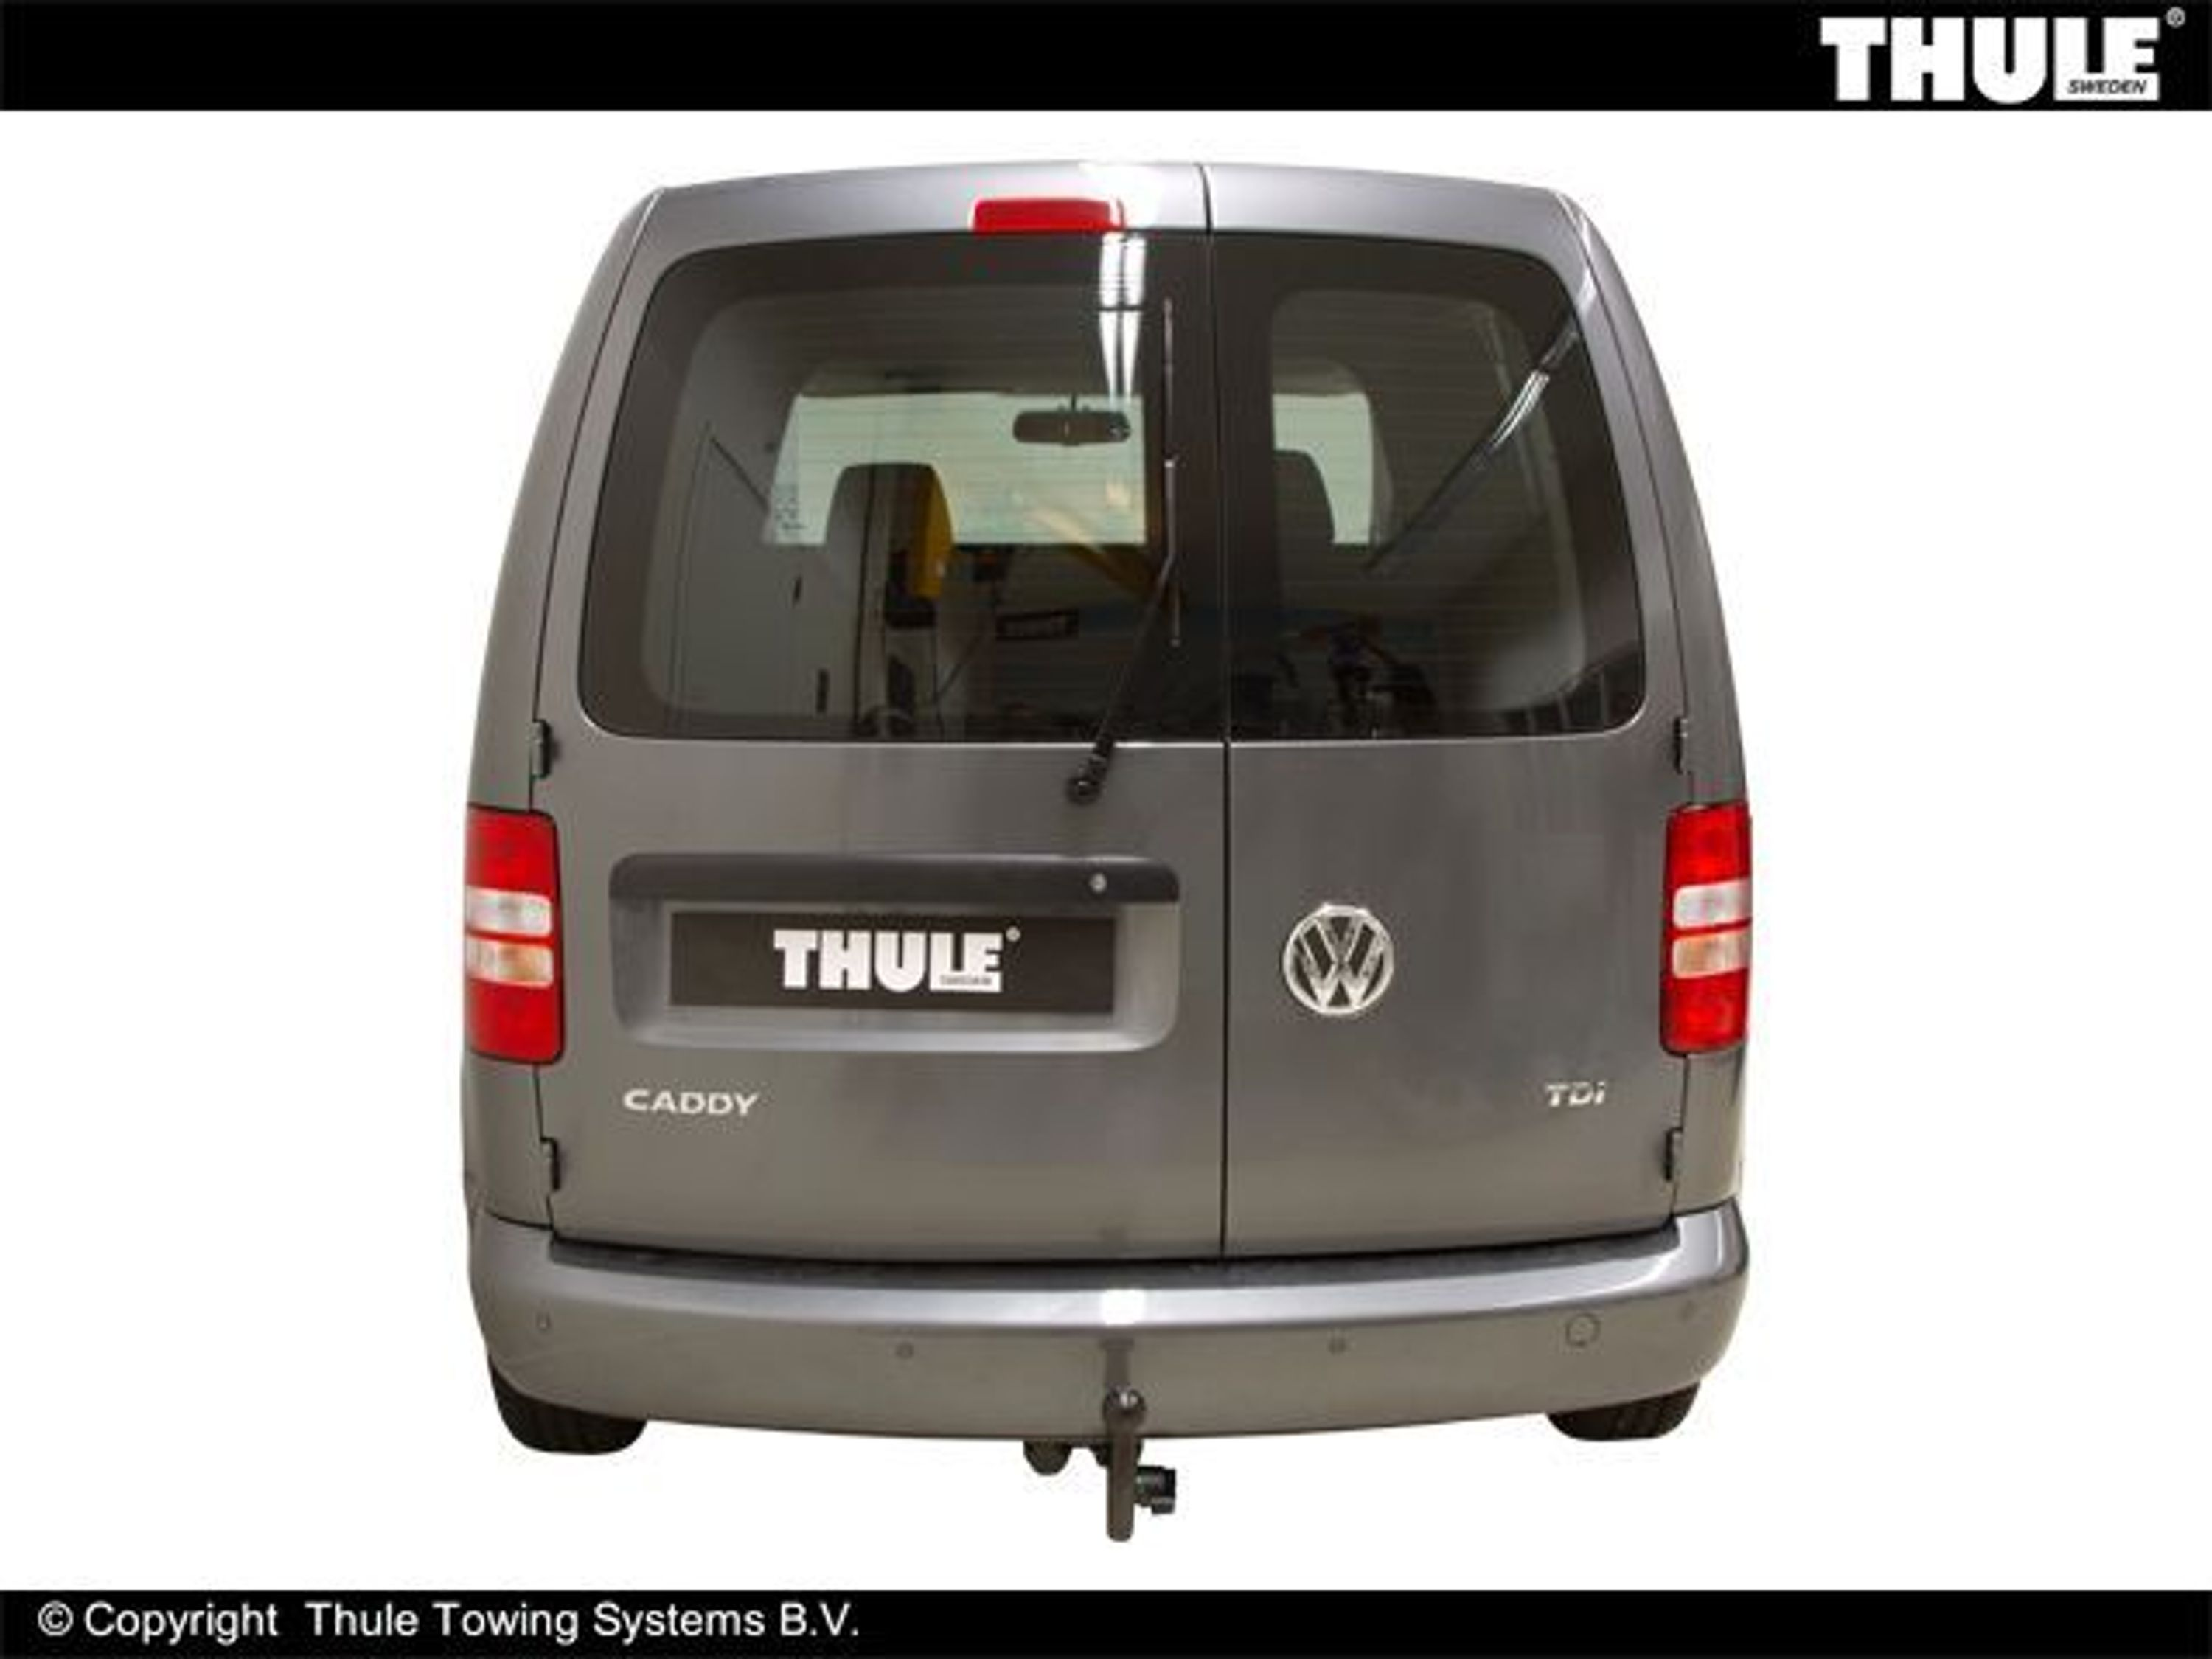 thule abnehmbare anh ngerkupplung bma 7 pol e satz volkswagen caddy maxi 2008 kaufen bei. Black Bedroom Furniture Sets. Home Design Ideas